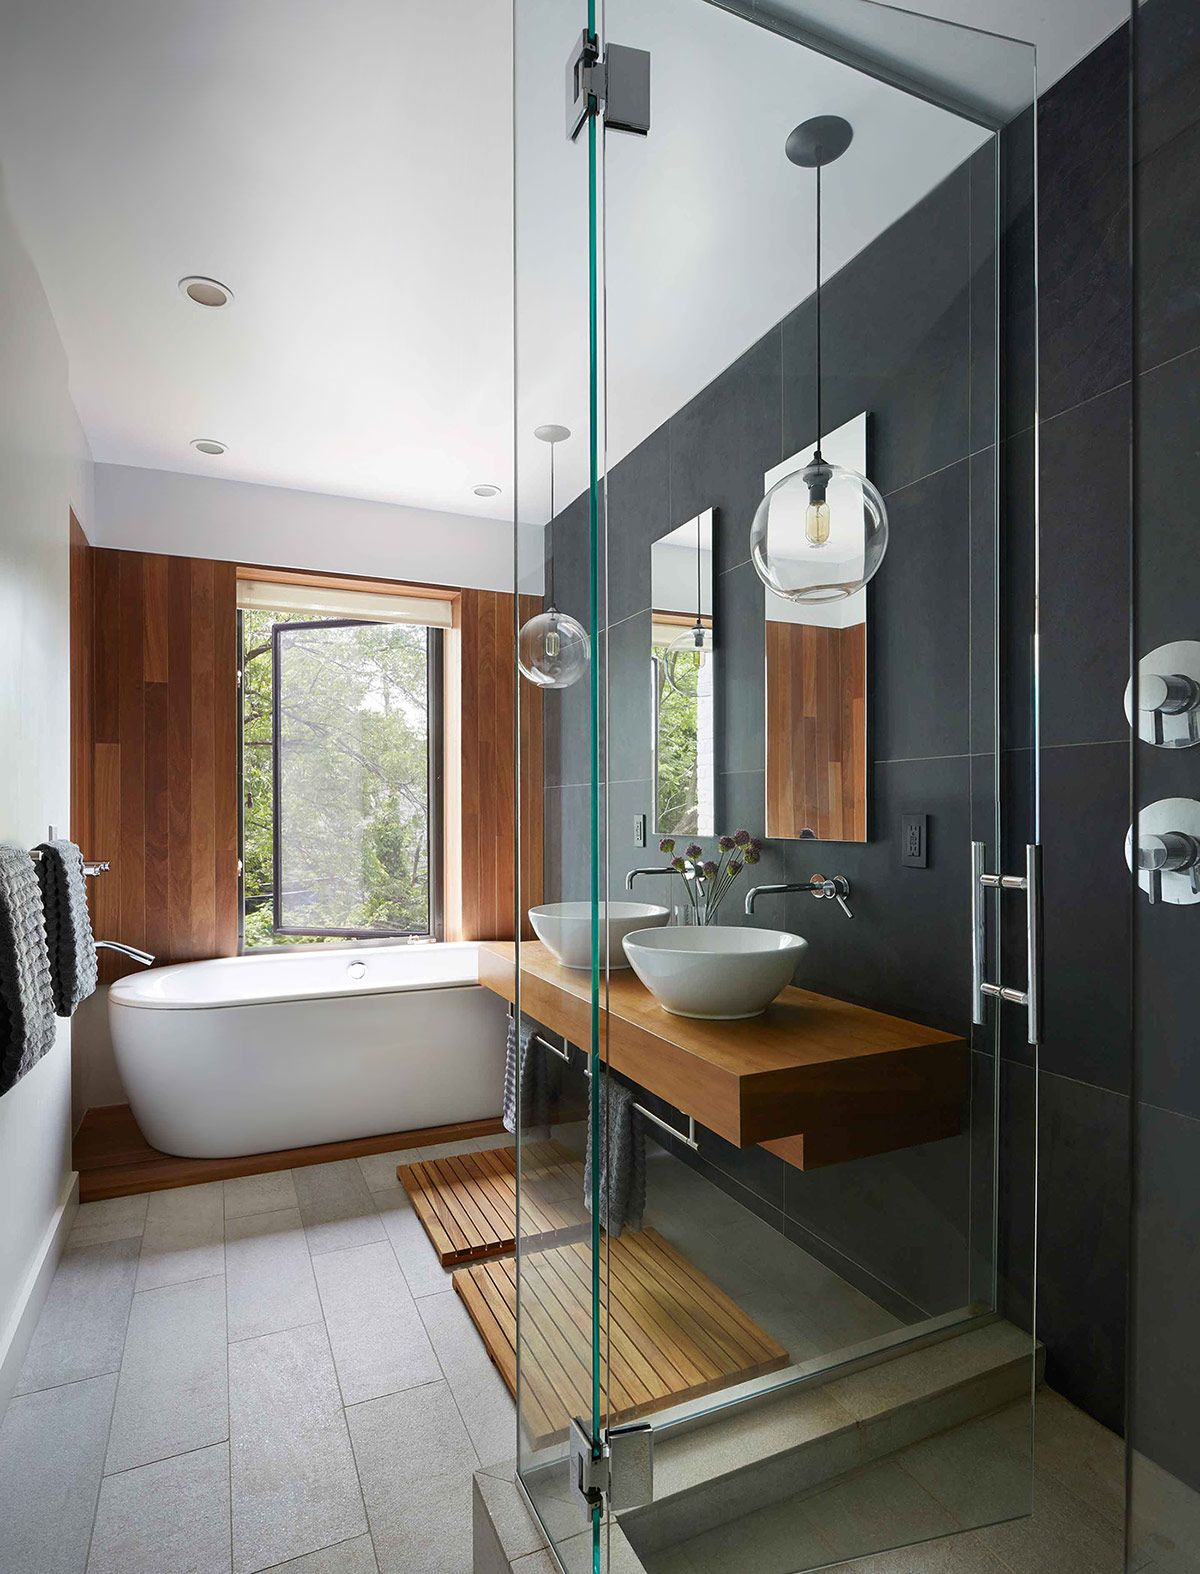 Contemporary Bathrooms Images 65 stunning contemporary bathroom design ideas to inspire your